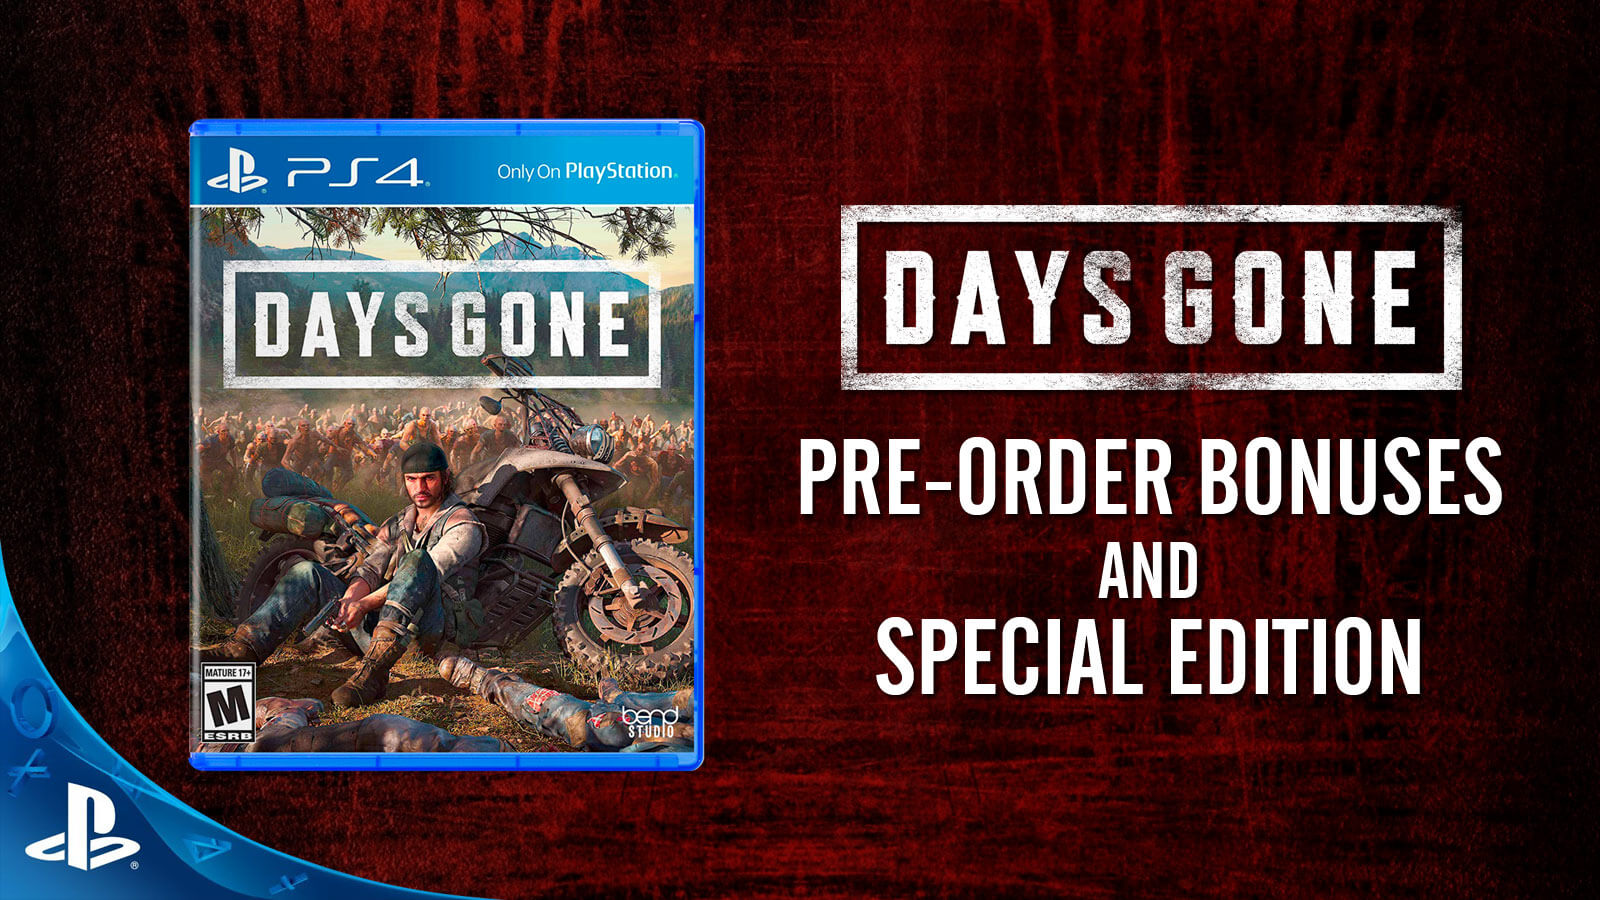 Days Gone Pre-order Bonuses and Special Edition - Gameslaught